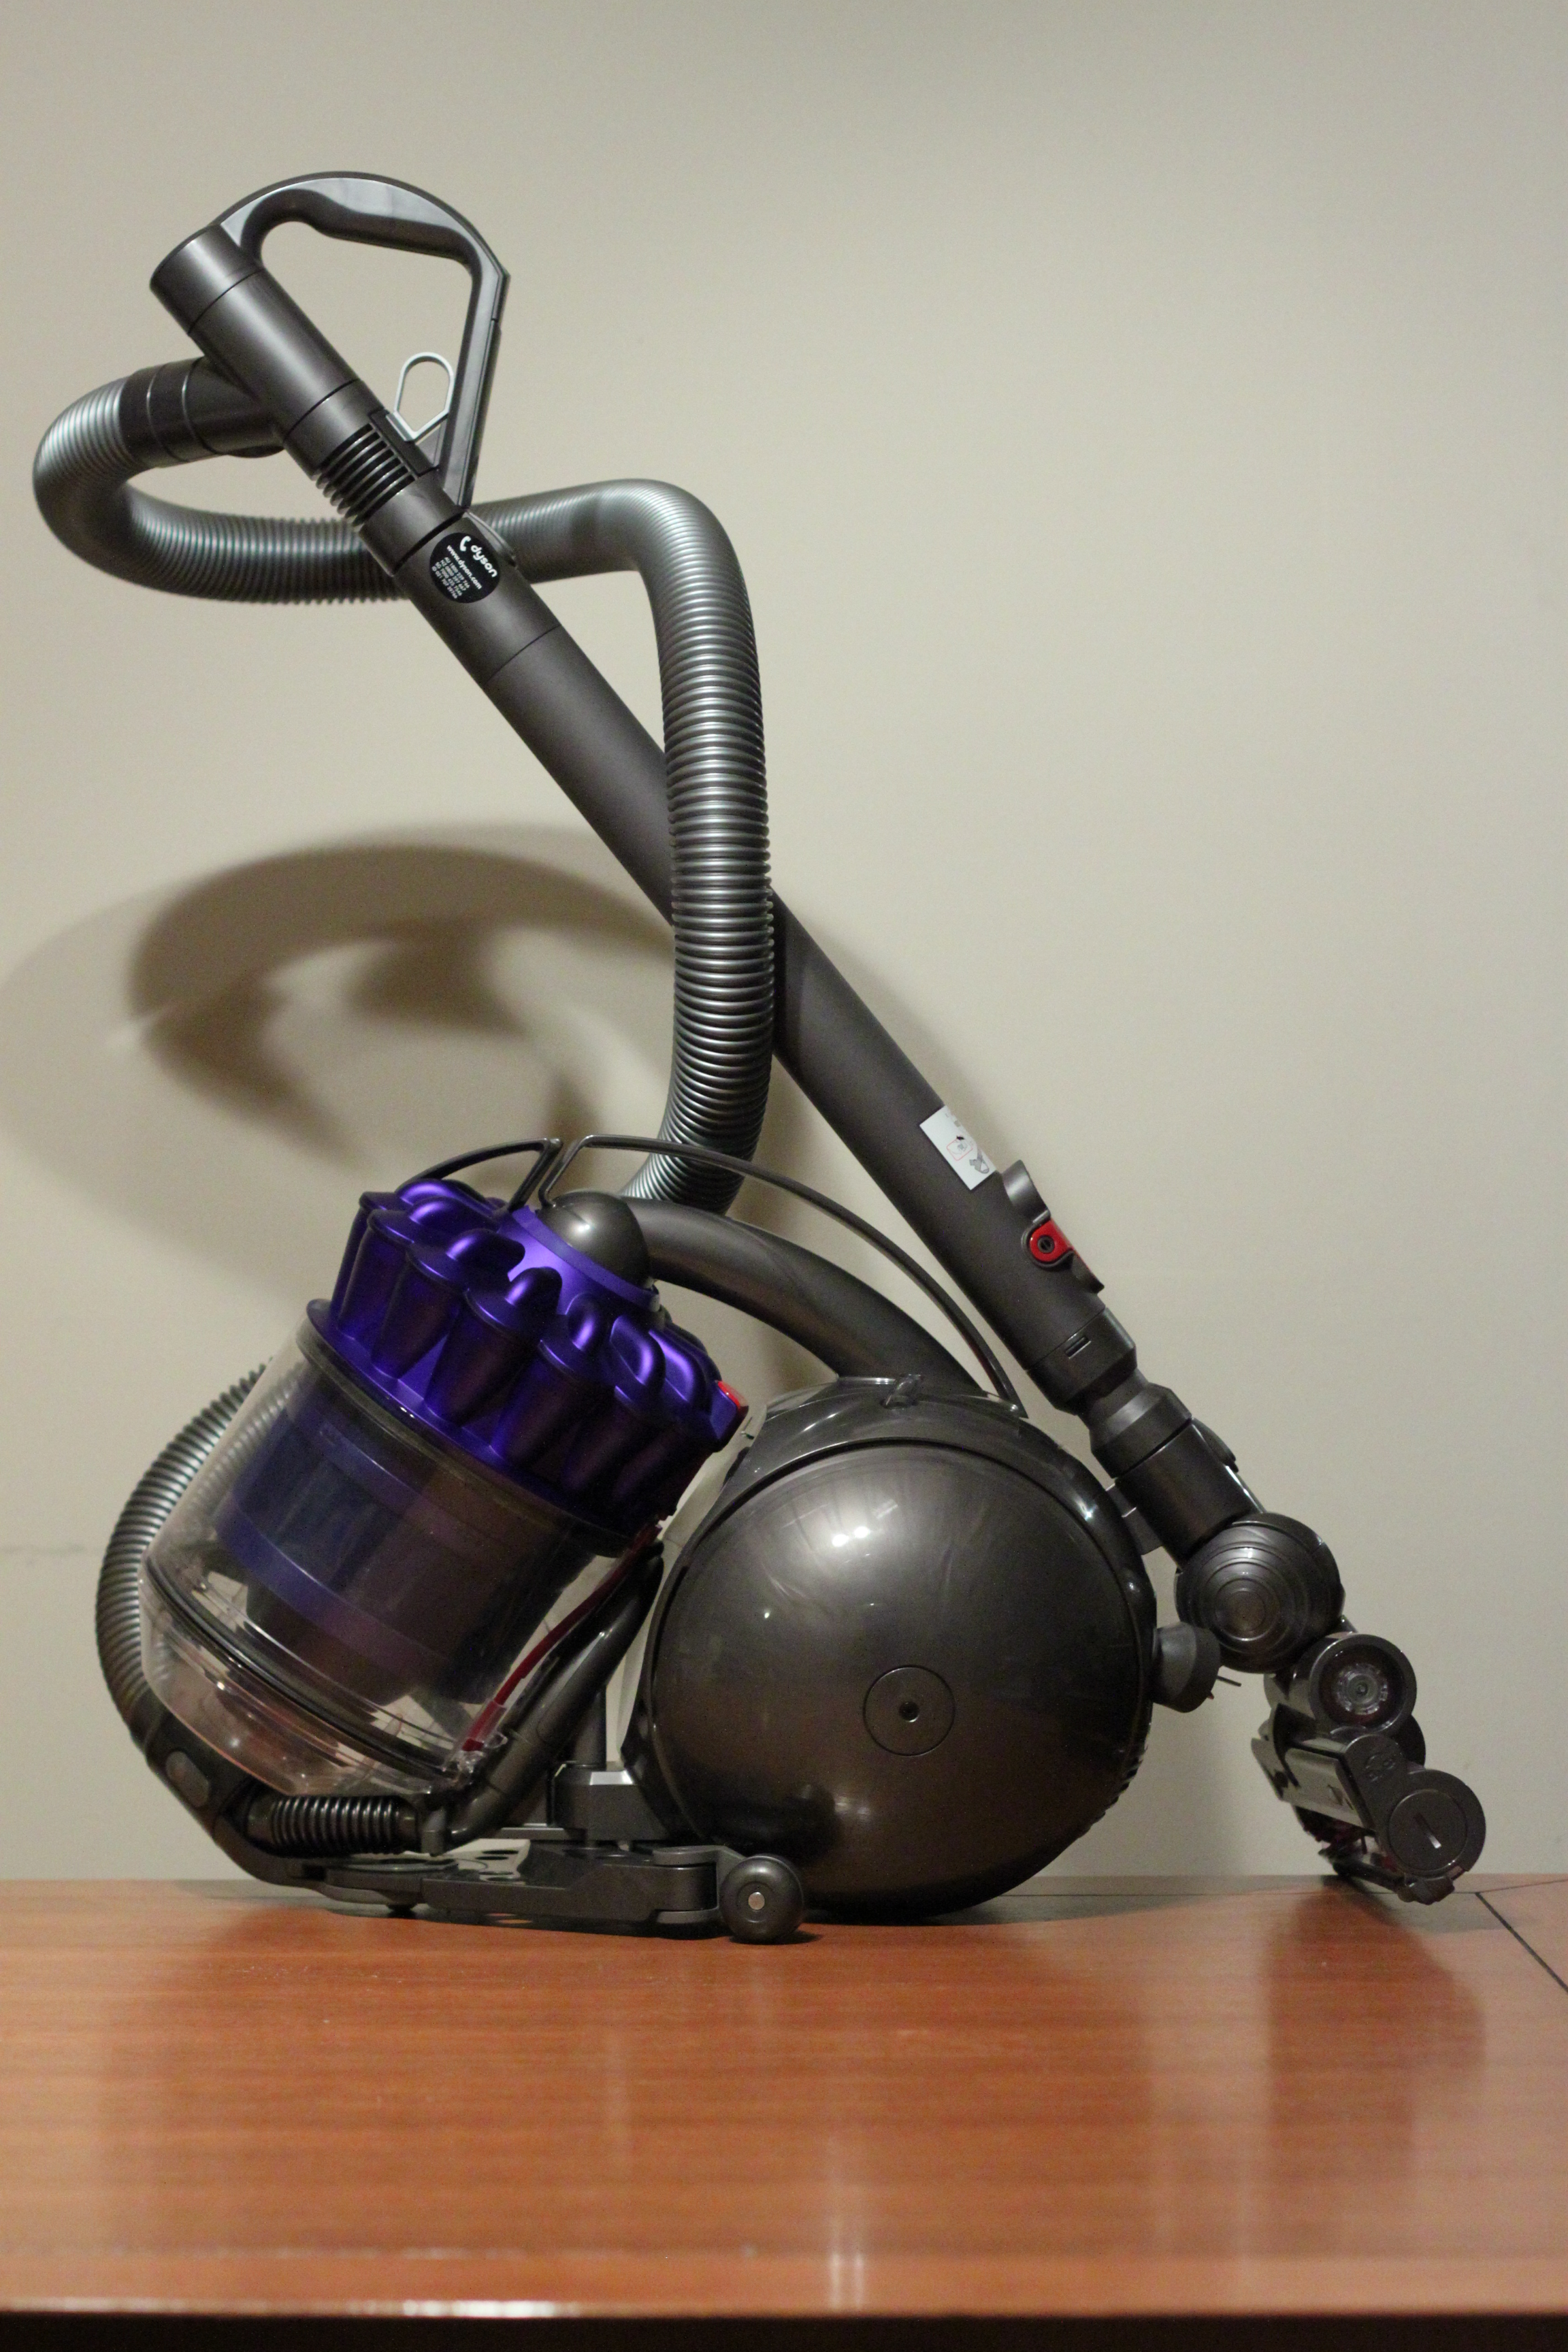 dyson ball dc39 vacuum cleaner first look ritchie 39 s room. Black Bedroom Furniture Sets. Home Design Ideas